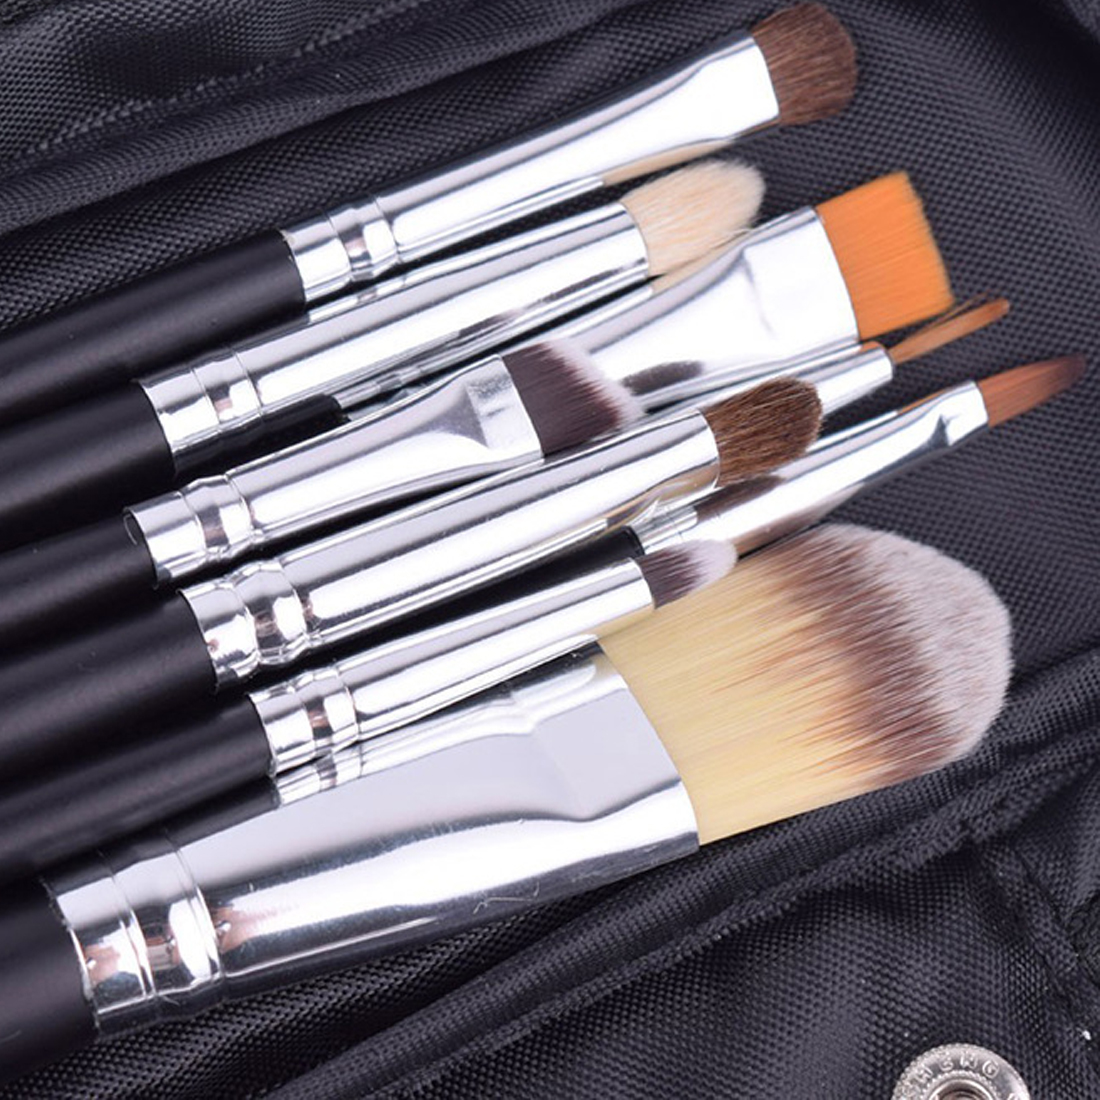 12pcs High Quality Make Up Brush Set Leather Case with Zipper Professional Cosmetic Beauty Makeup Brushes & Tools nature hair makeup brush set 22pcs high quality red beauty tools kit with case